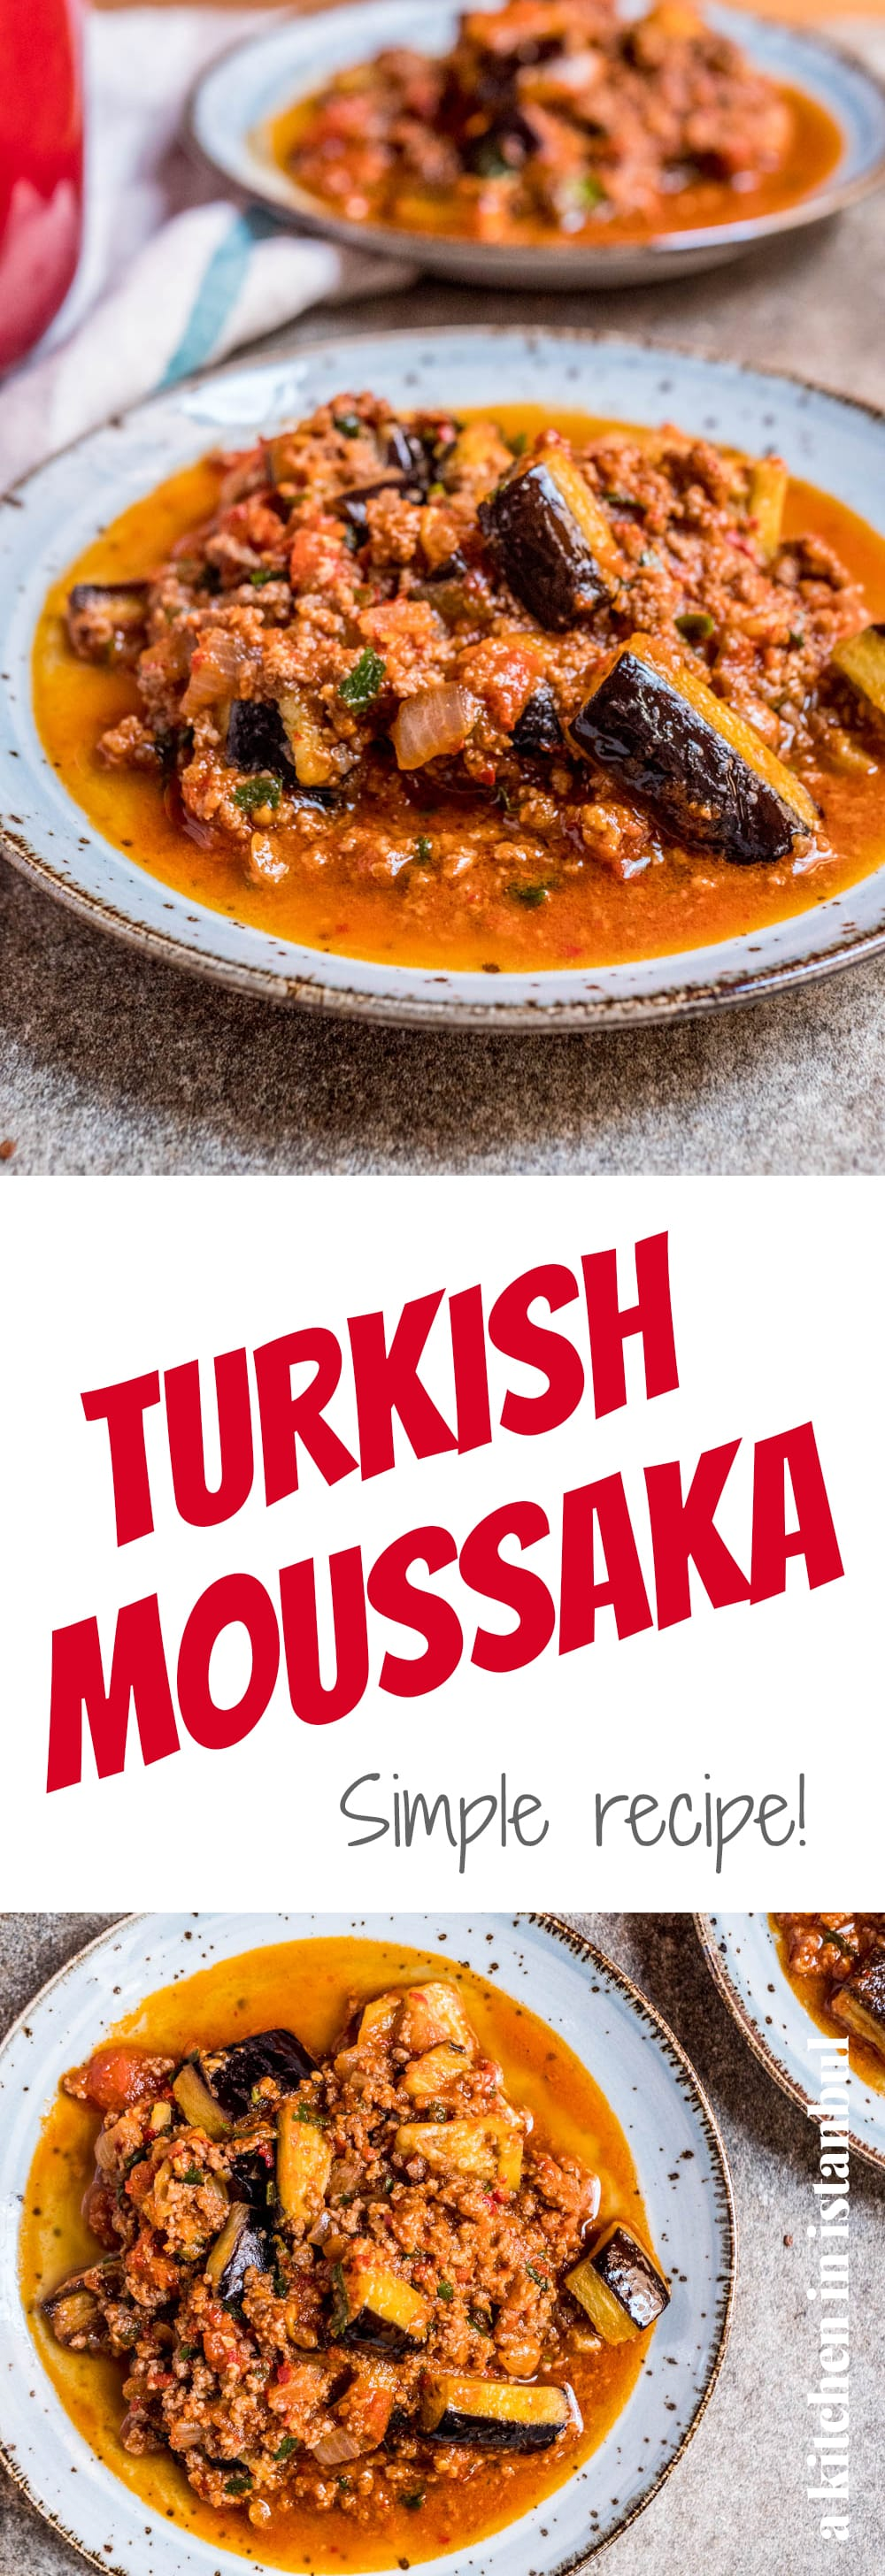 Turkish moussaka - recipe / A kitchen in Istanbul